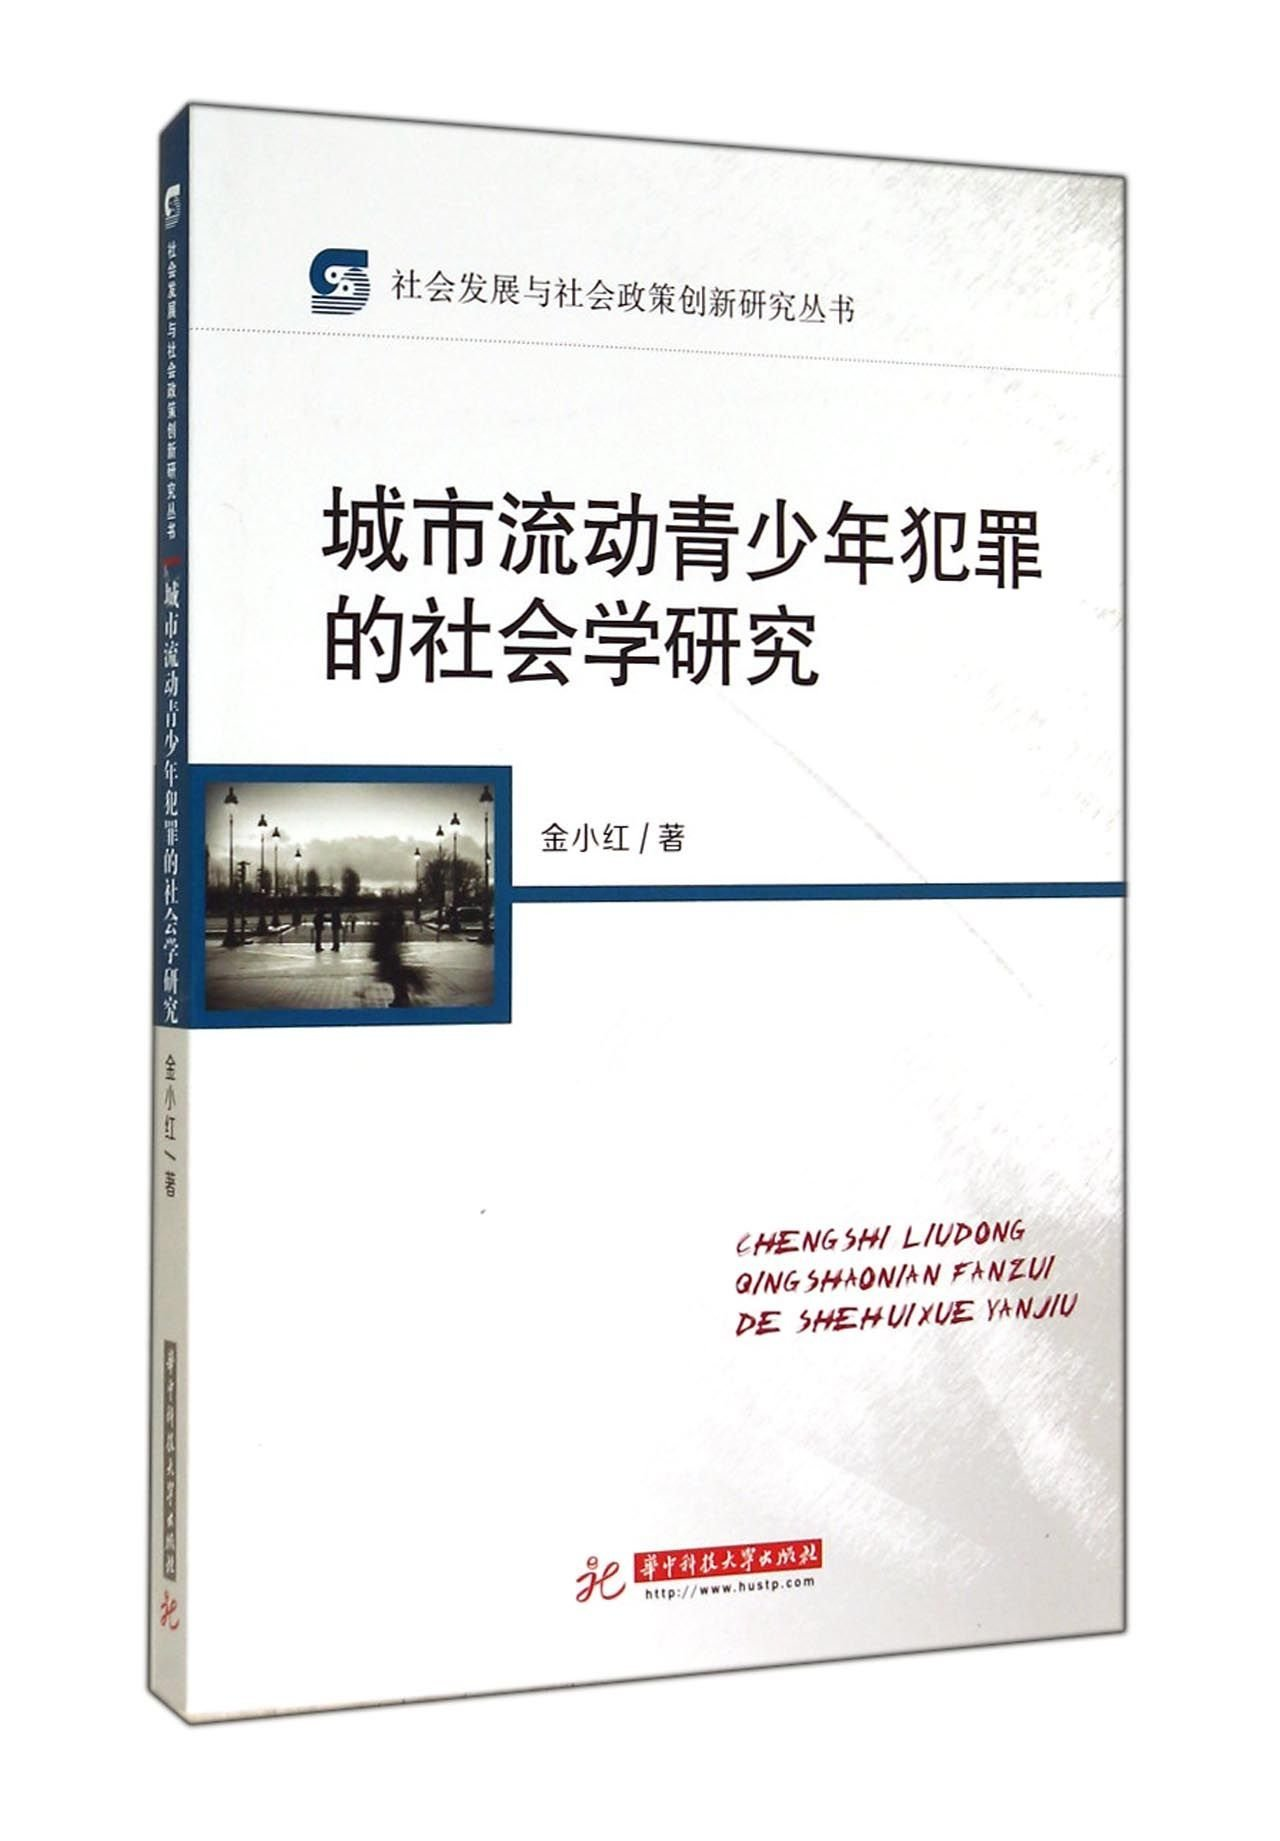 Read Online Sociology of urban mobility to juvenile delinquency Social Development and Social Policy Innovation Research Series(Chinese Edition) pdf